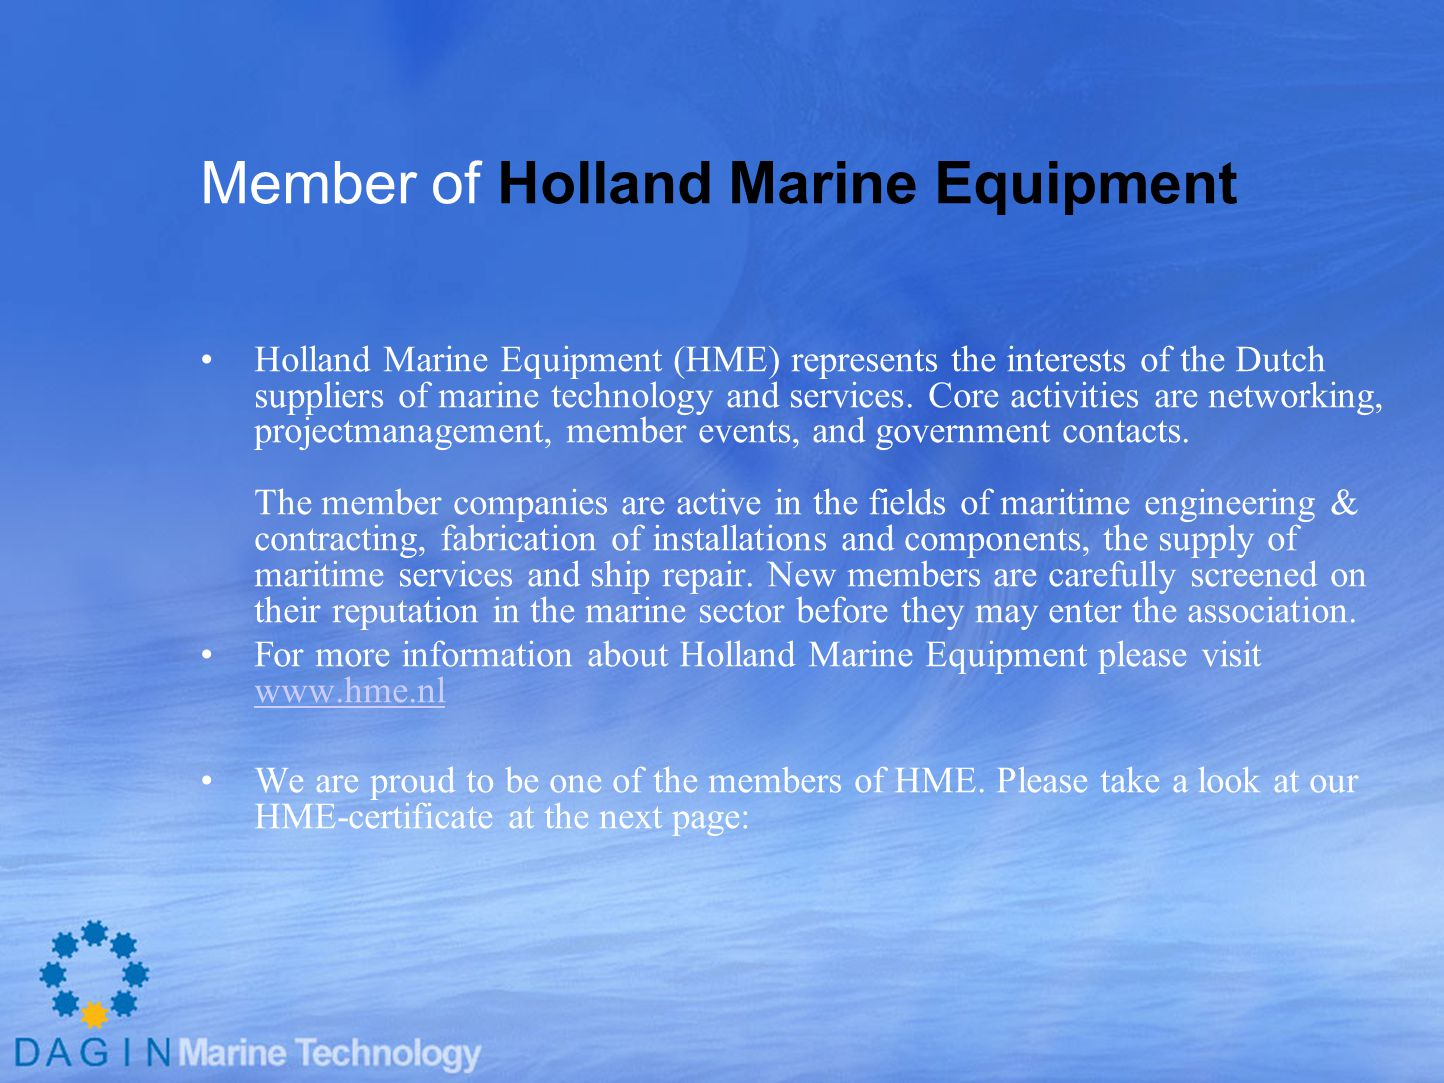 Member of Holland Marine Equipment